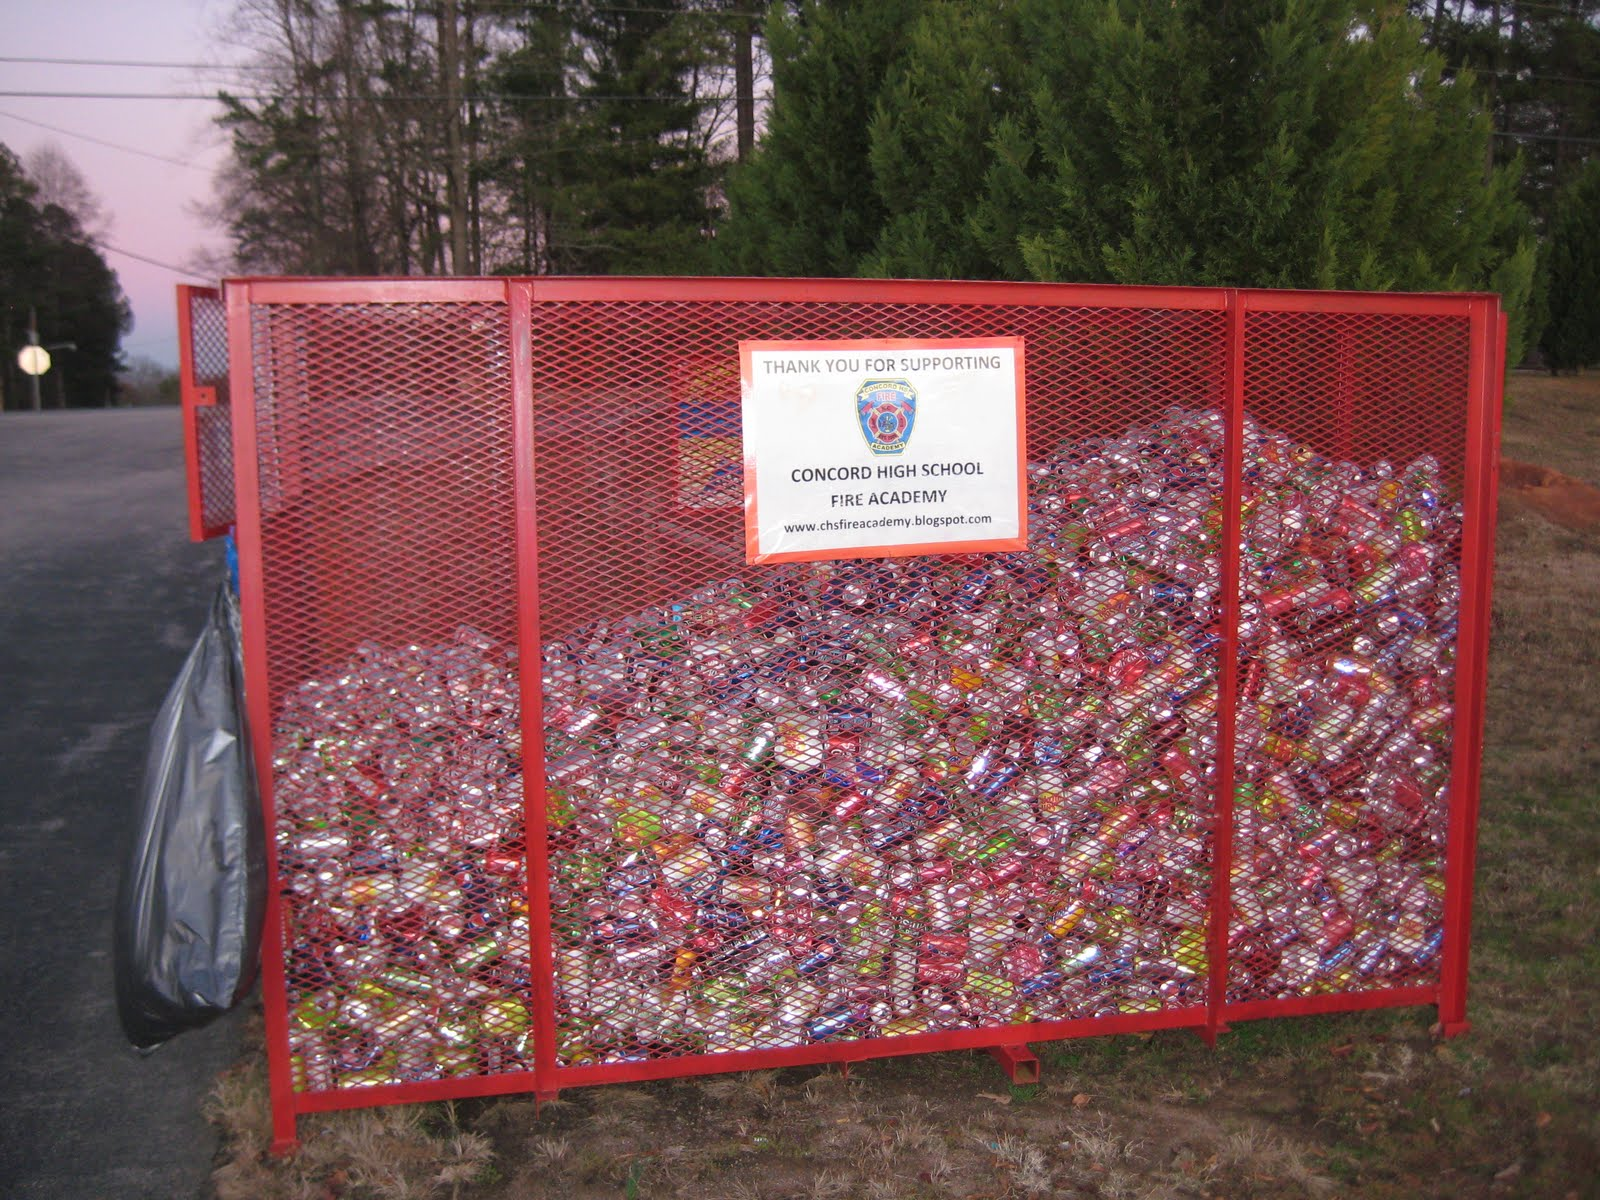 Concord high school fire academy aluminum can recycling for Recycling projects for school